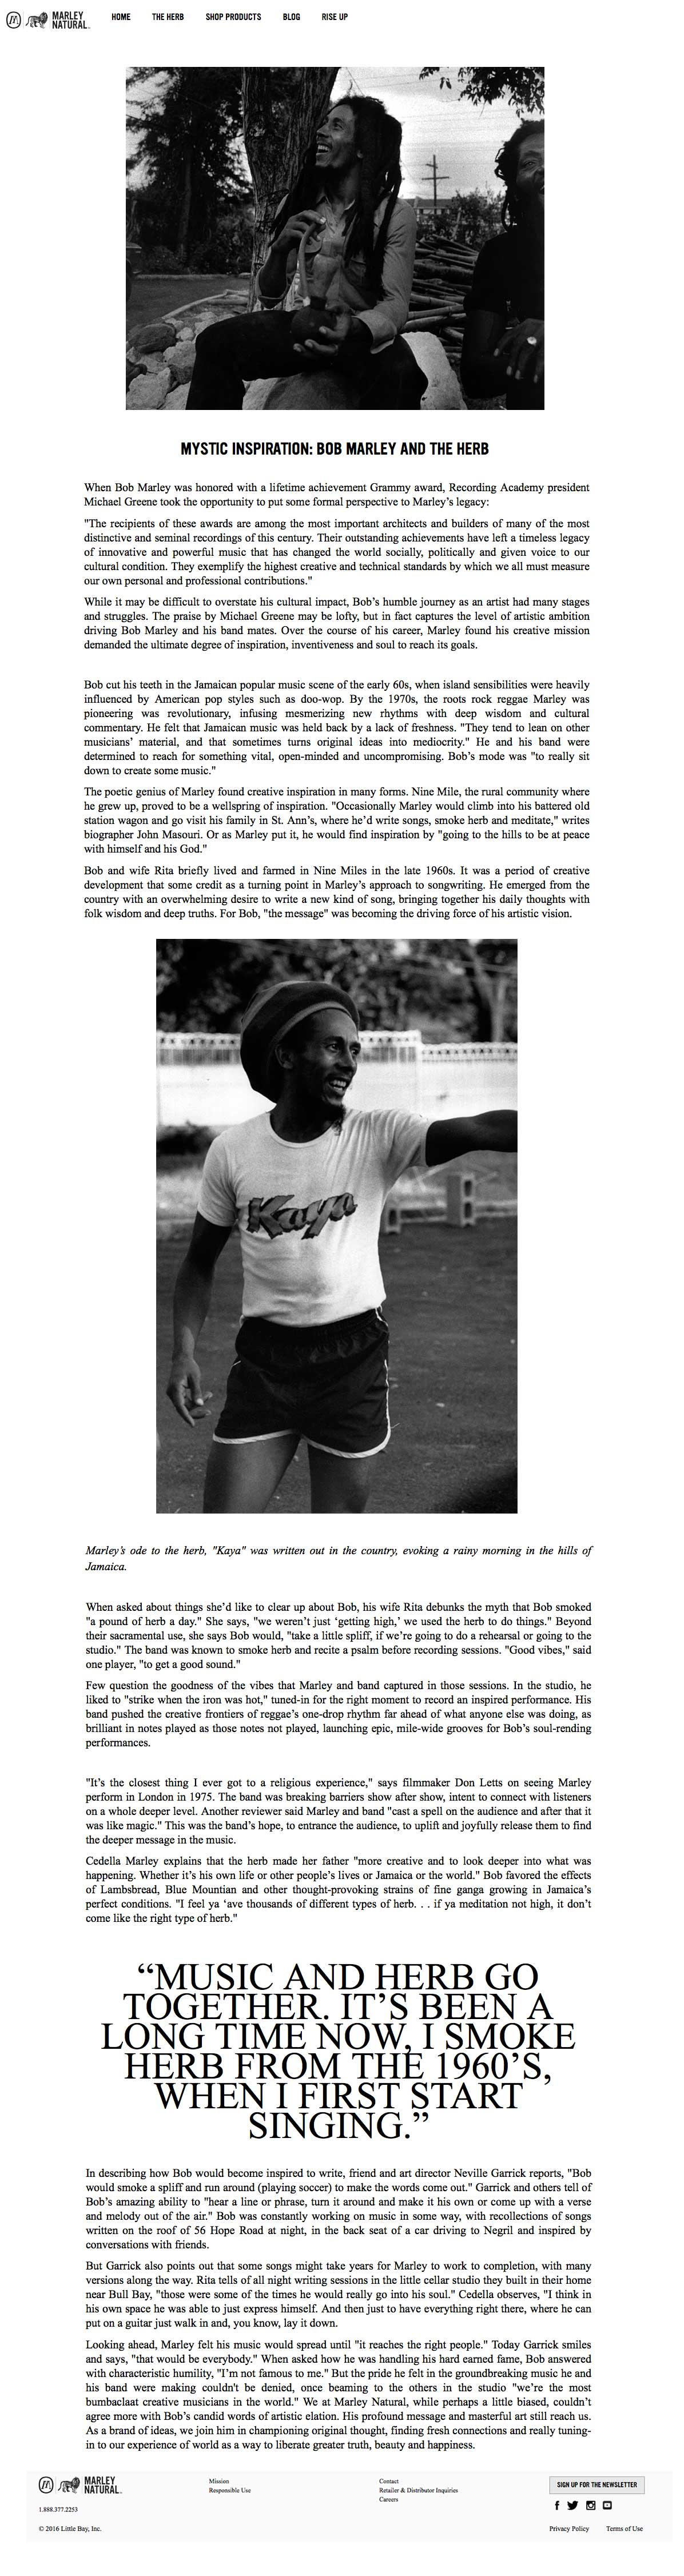 image of news article about Bob Marley